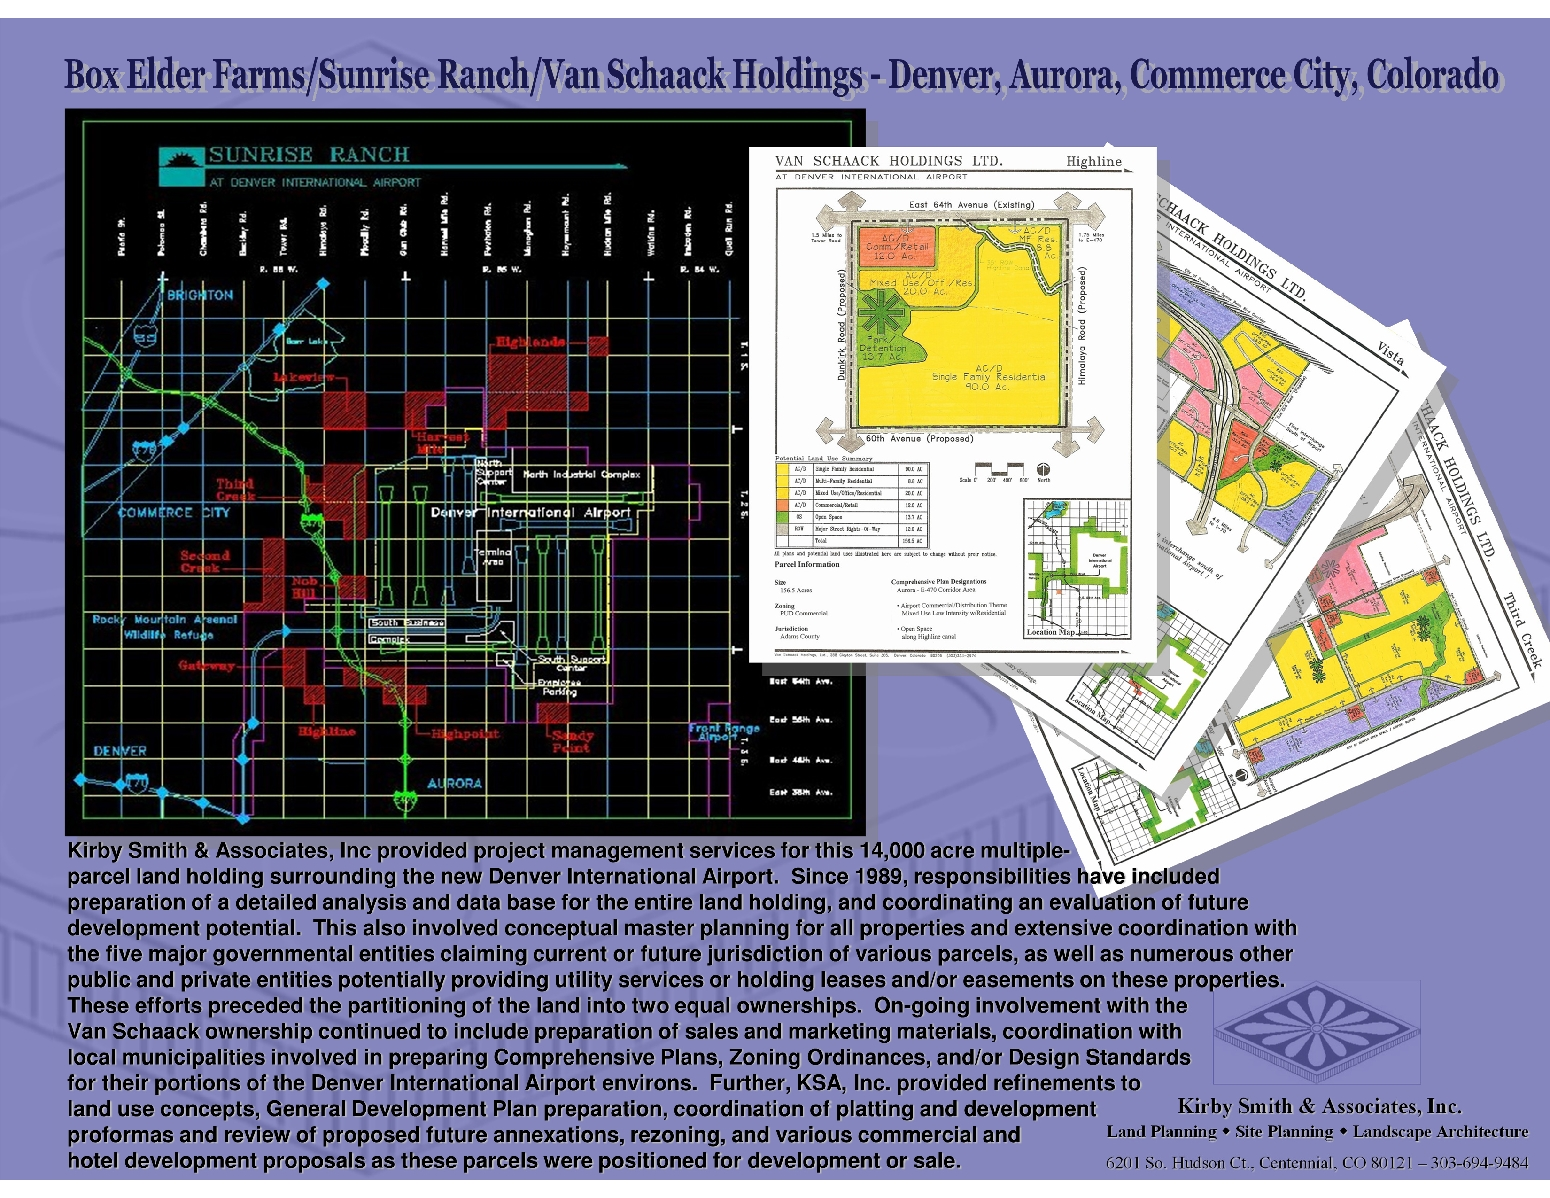 Kirby Smith & Associates, Inc provided project management services for this 14,000 acre multiple-                                 parcel land holding surrounding the new Denver International Airport.  Since 1989, responsibilities have included preparation of a detailed analysis and data base for the entire land holding, and coordinating an evaluation of future development potential.  This also involved conceptual master planning for all properties and extensive coordination with the five major governmental entities claiming current or future jurisdiction of various parcels, as well as numerous other public and private entities potentially providing utility services or holding leases and/or easements on these properties.  These efforts preceded the partitioning of the land into two equal ownerships.  On-going involvement with the                  Van Schaack ownership continued to include preparation of sales and marketing materials, coordination with                      local municipa